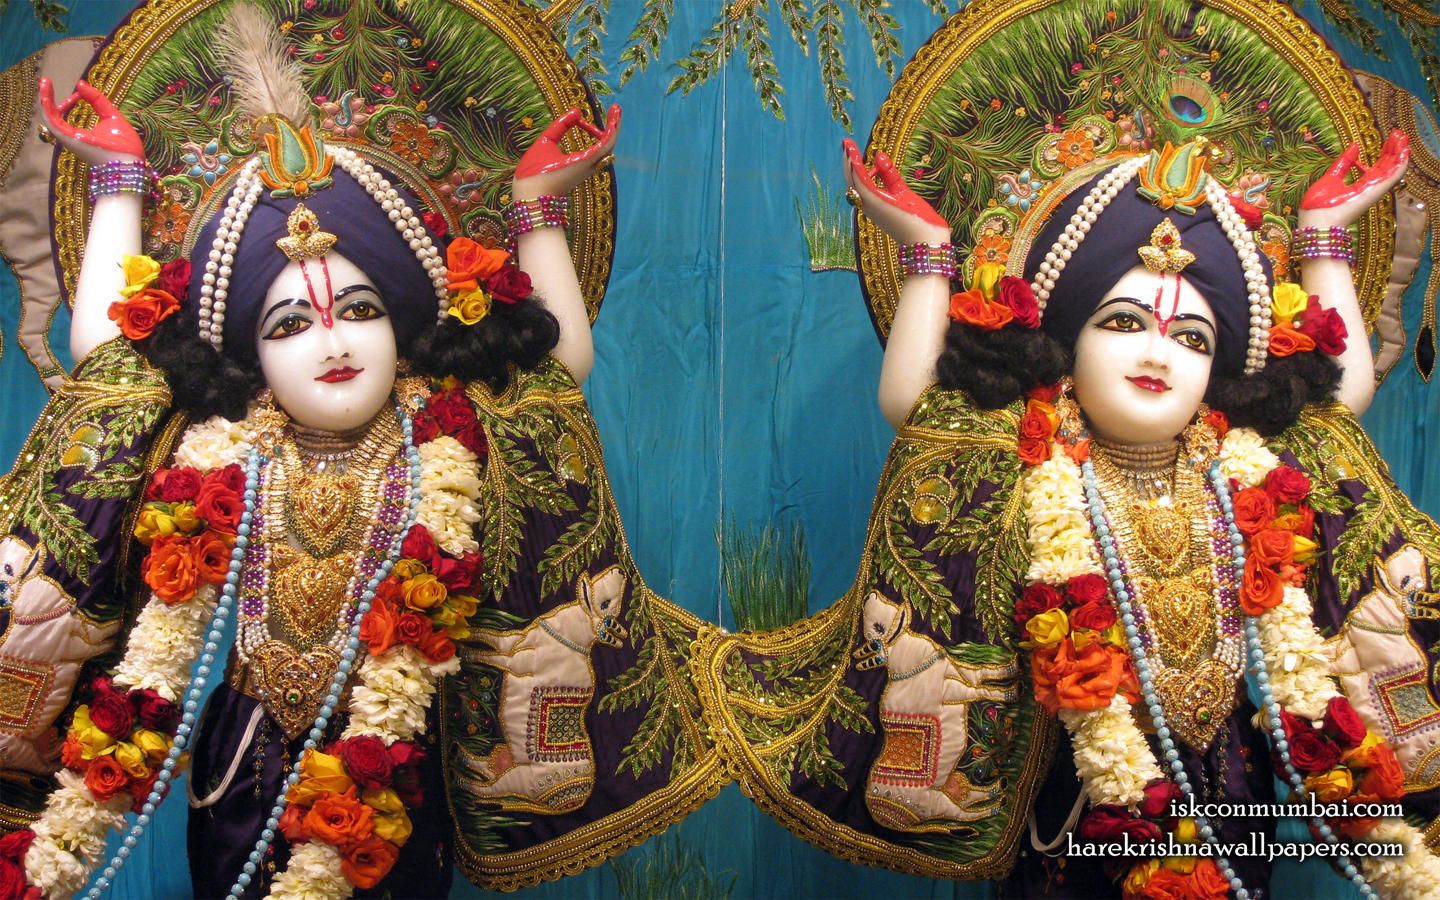 Sri Sri Gaura Nitai Close up Wallpaper (008) Size 1440x900 Download